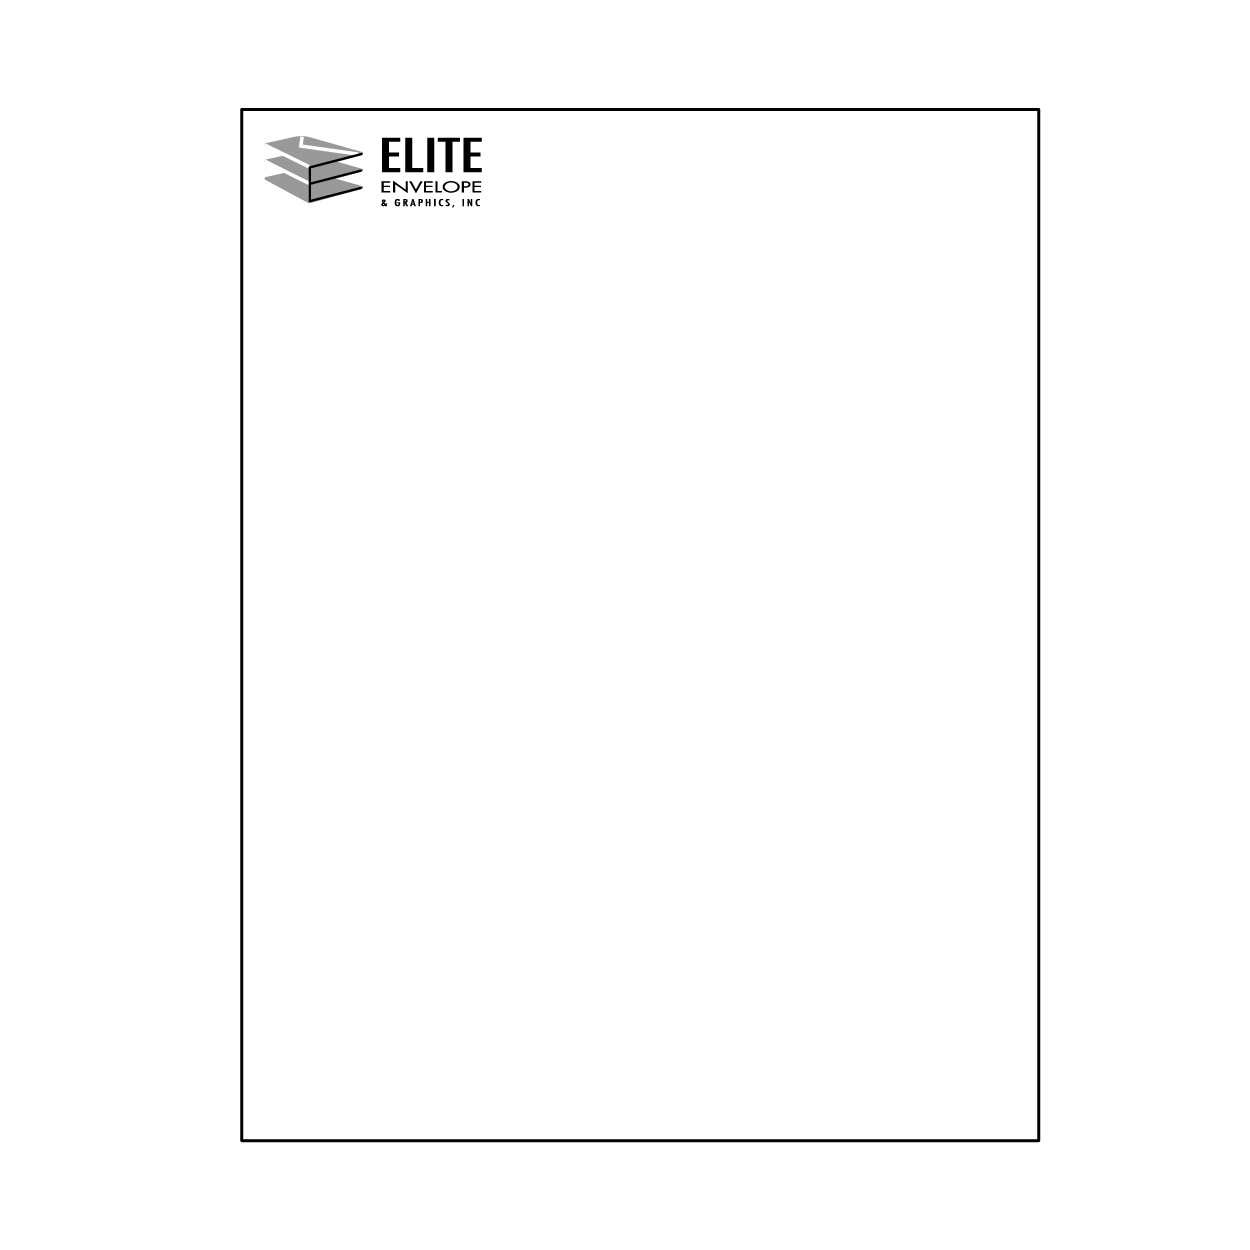 8 1/2 x 11 Letterhead and forms - one color